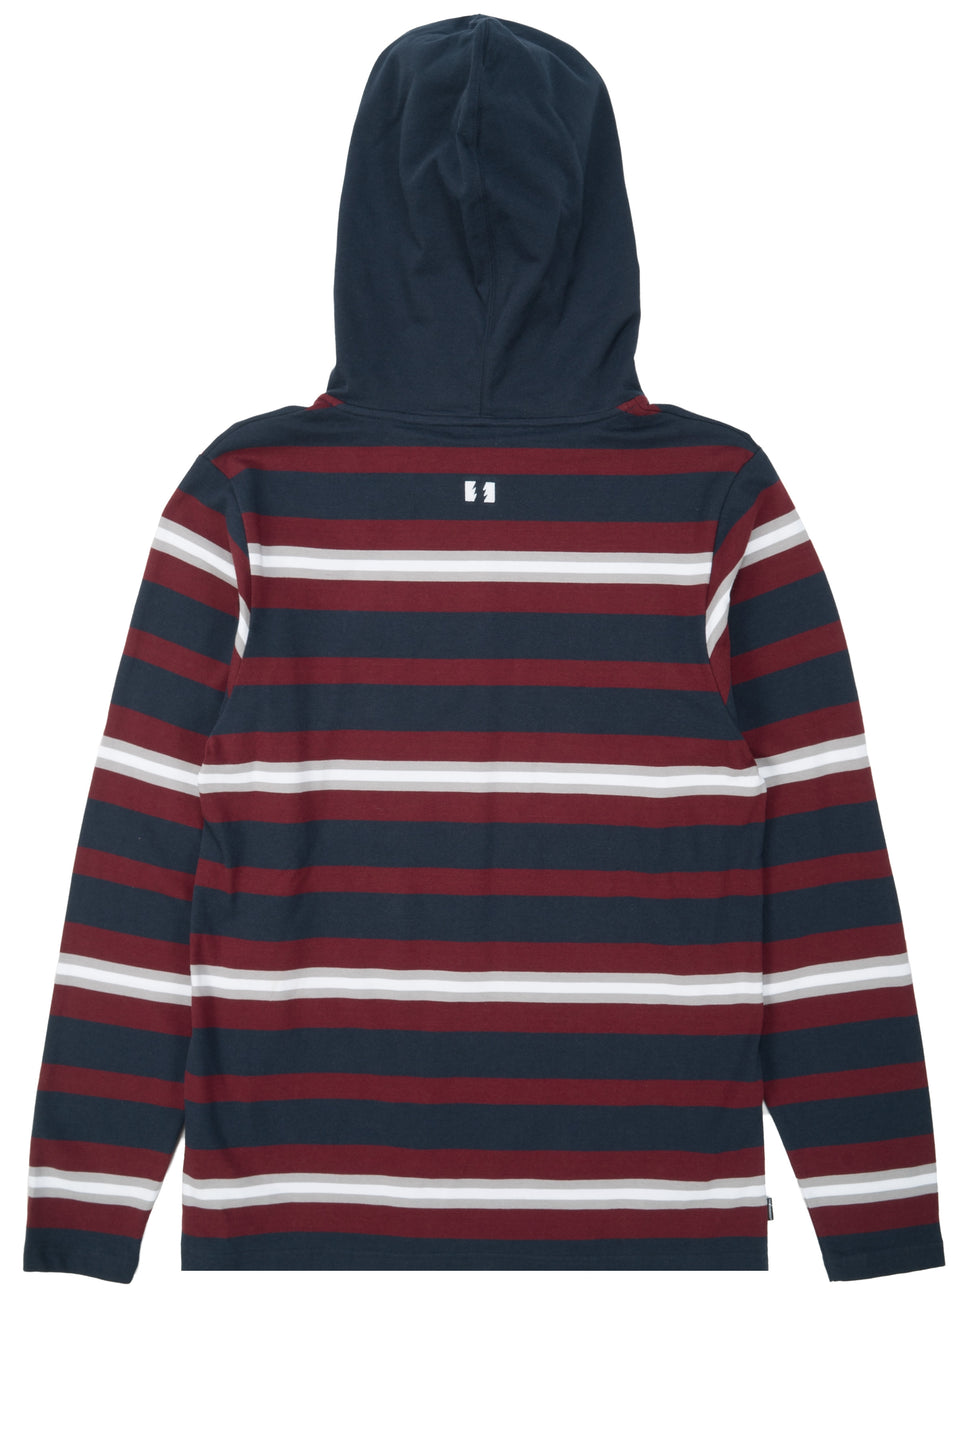 Elmont L/S Hooded Shirt